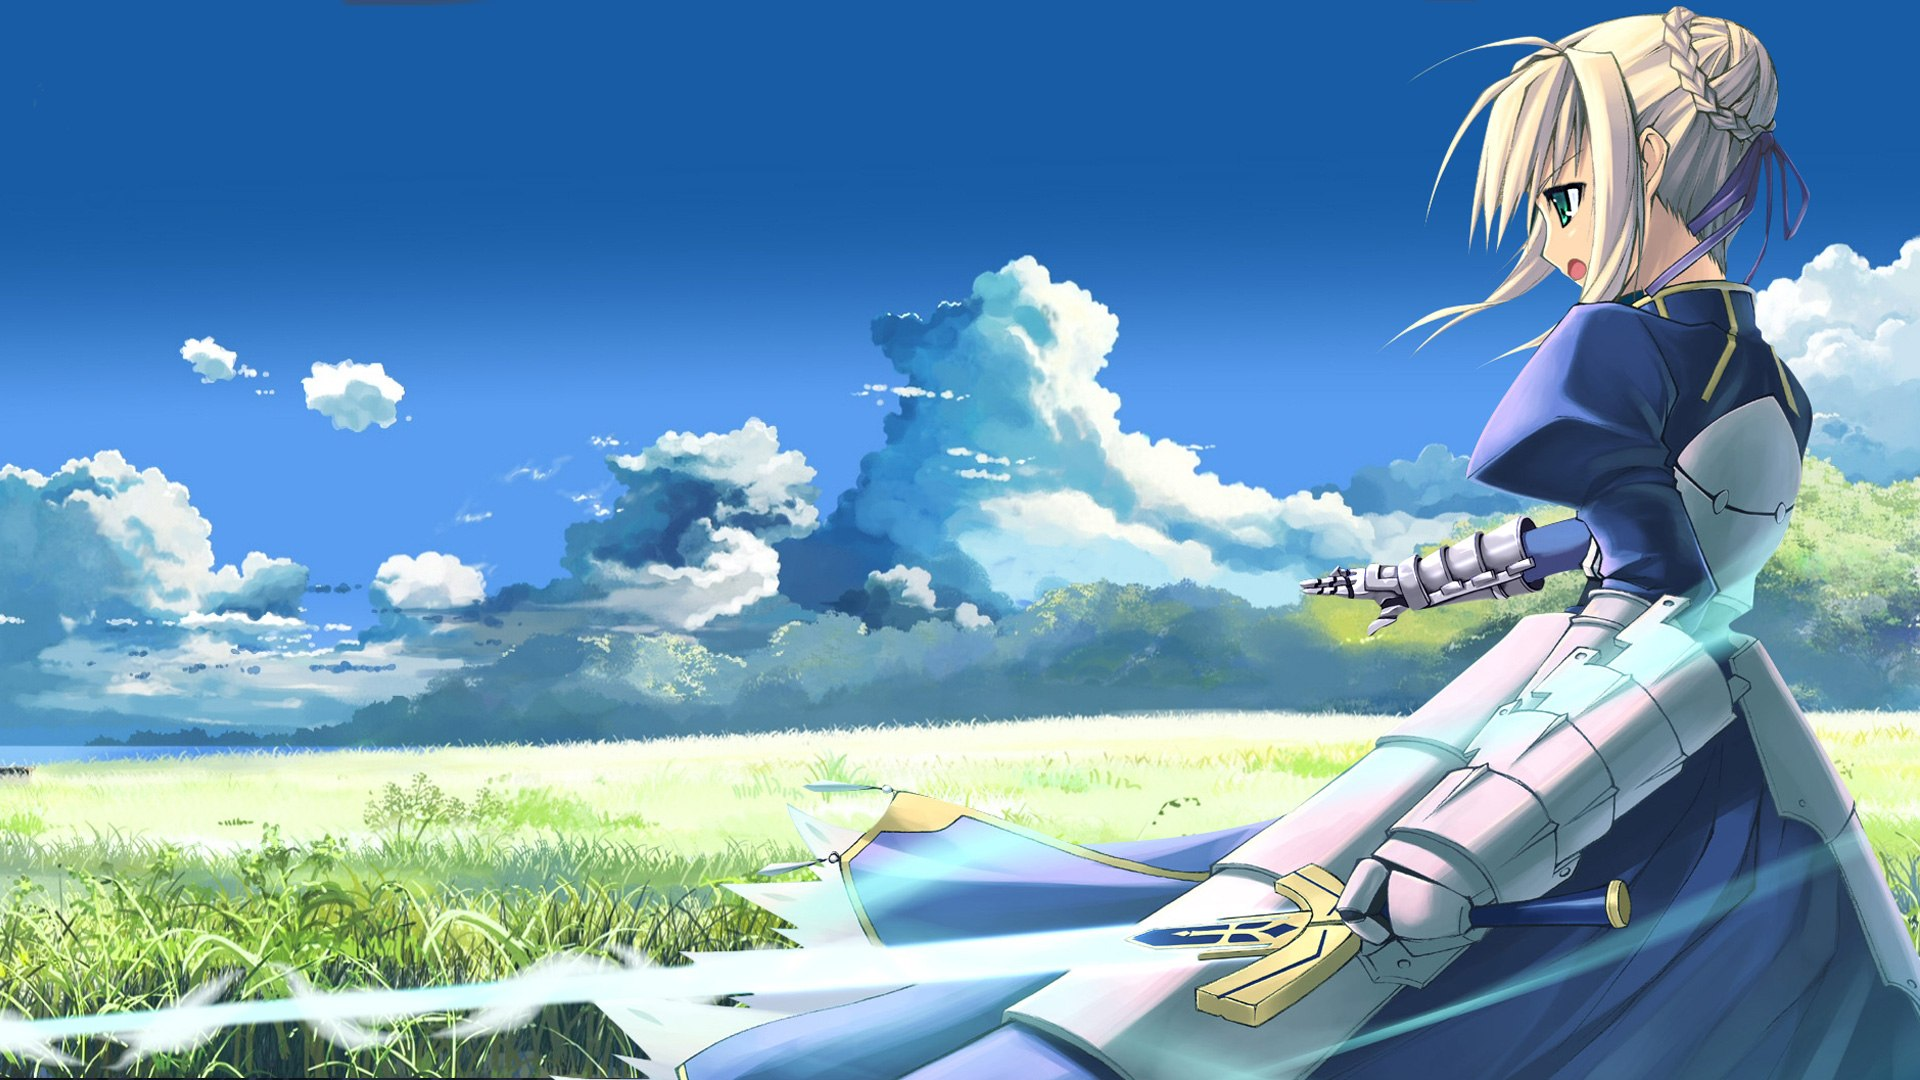 Anime wallpaper 1920x1080 HQ WALLPAPER - (#38375)